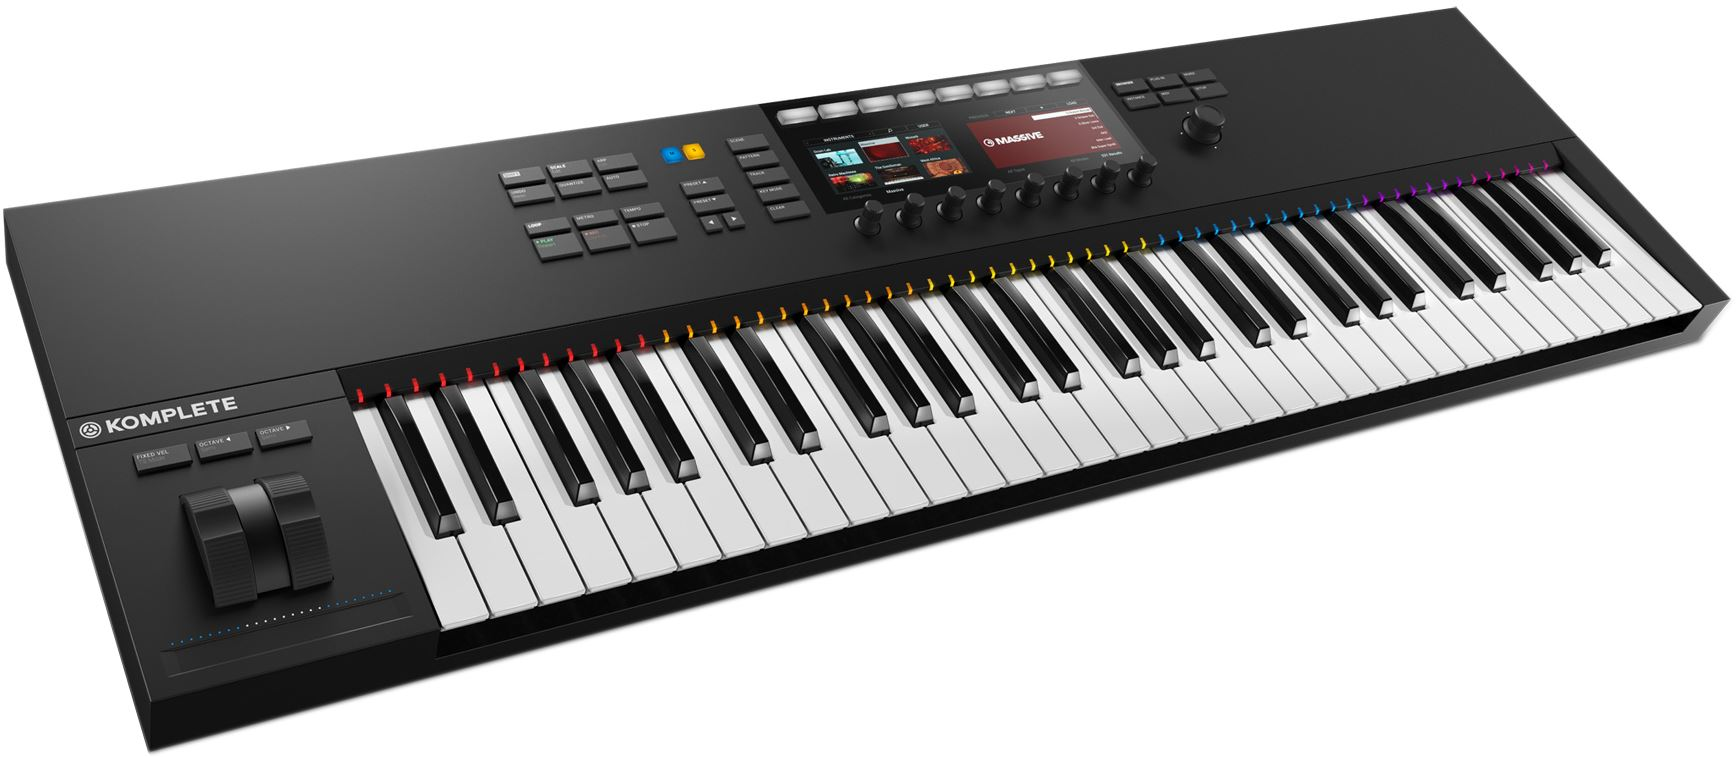 NativeInstruments KompleteKontrolS61 MK2 keyboard